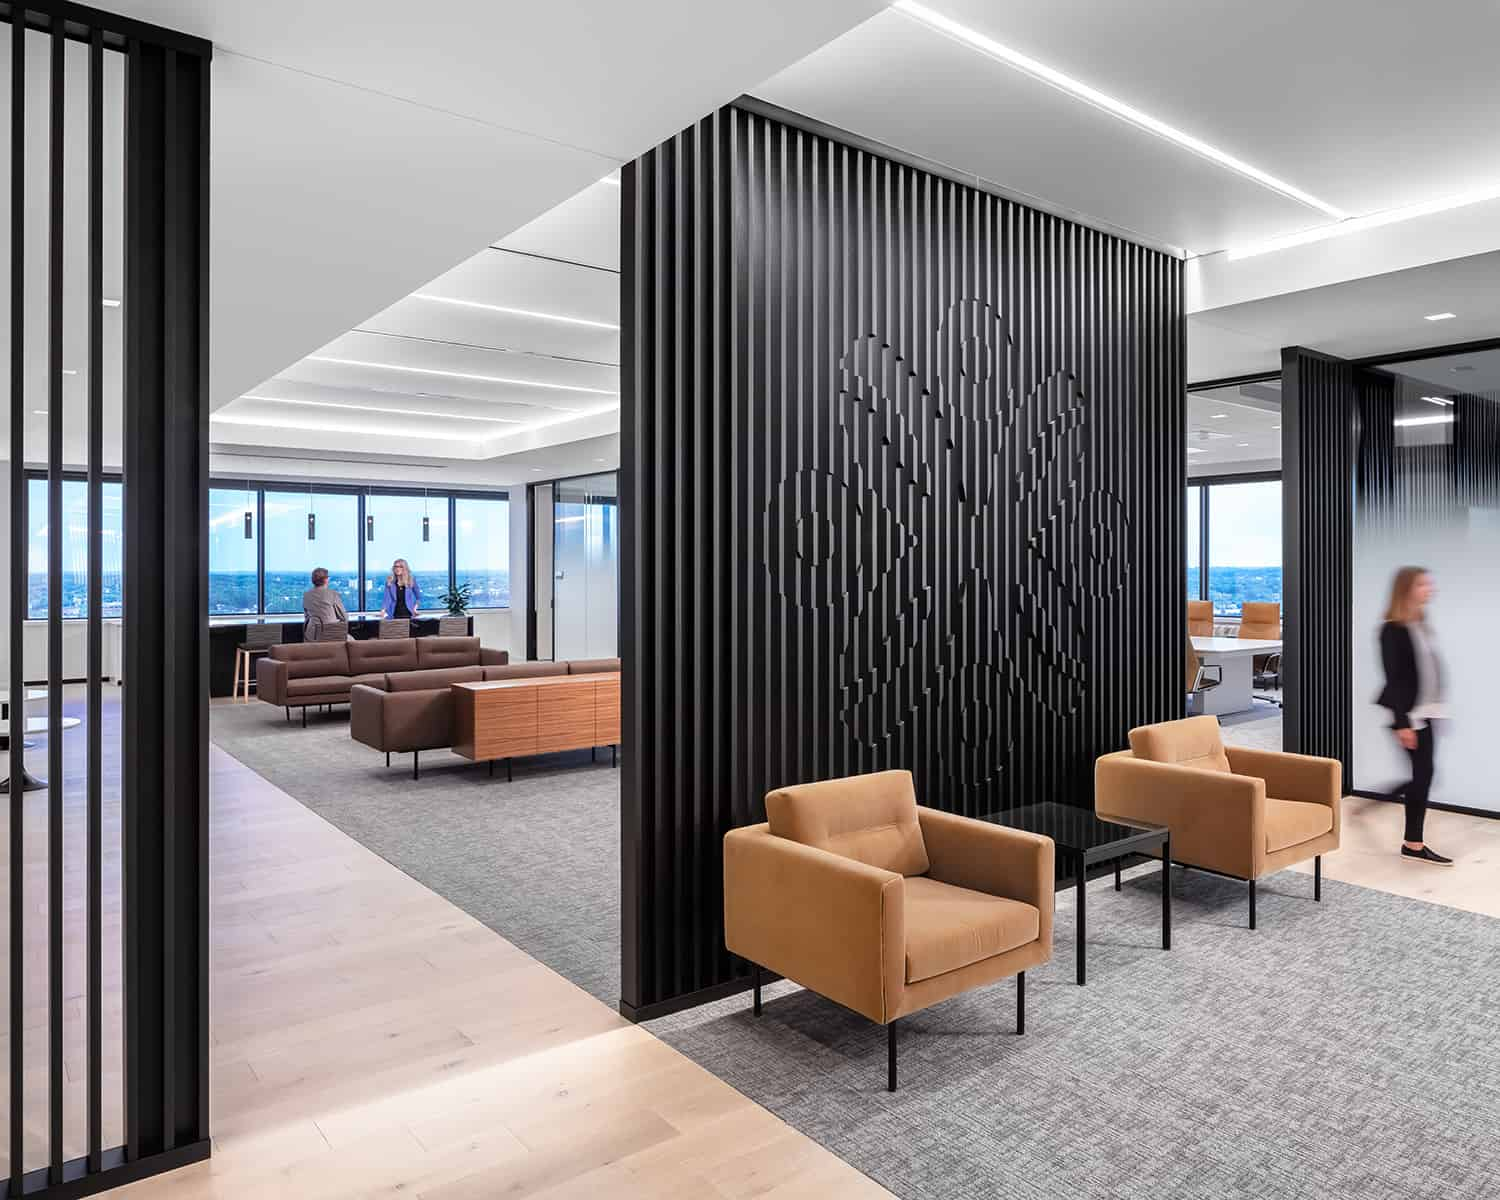 The entry to the leadership lounge cafe featuring a custom made slatted wall with an inset Securian logo.